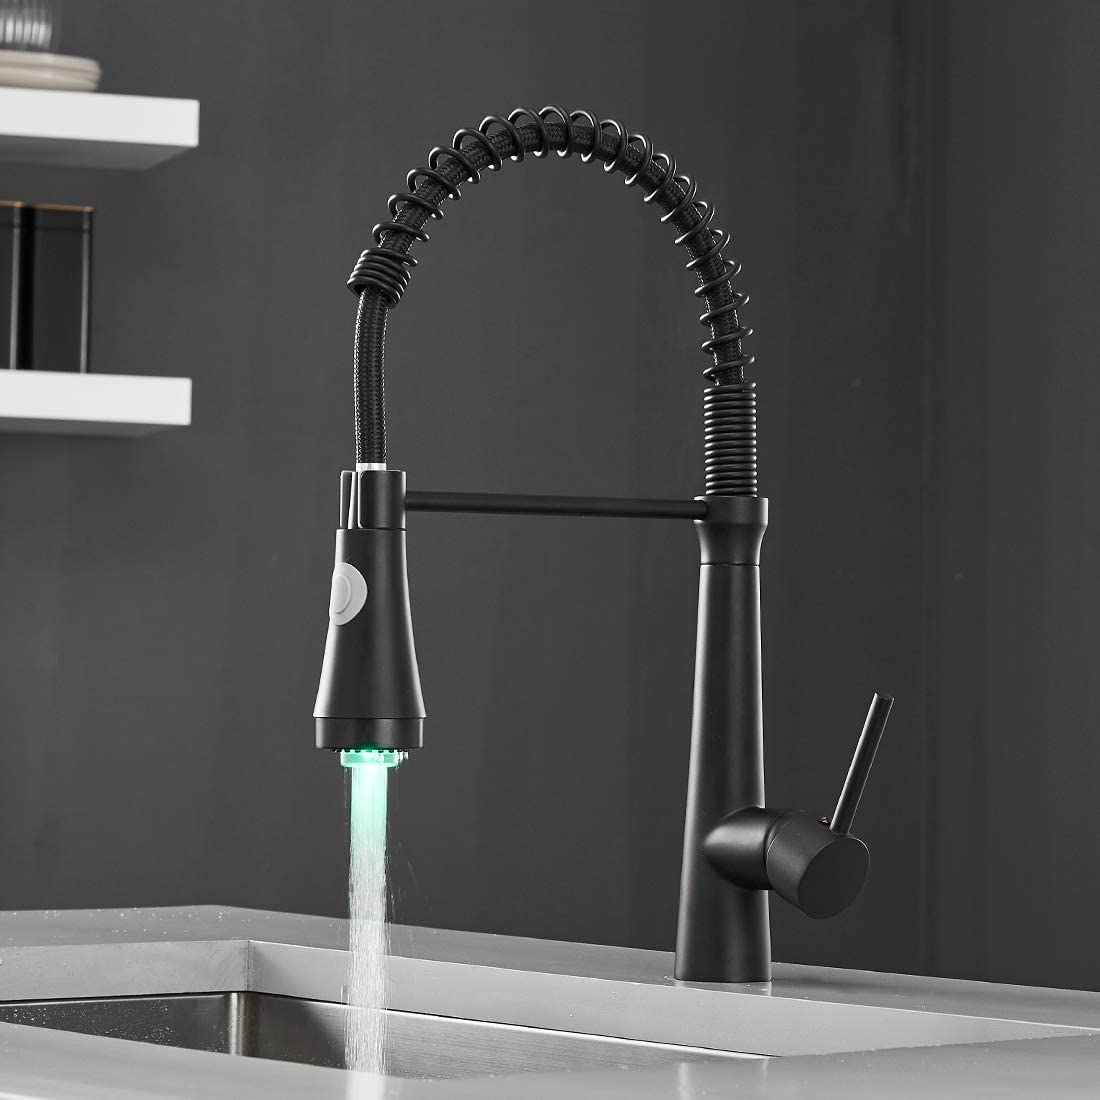 WANMAI Matte Black Kitchen Faucet, Contemporary Black Pull Down Sink Faucet with Sprayer, Commercial Single Handle High Arc Sink Faucets with LED Light